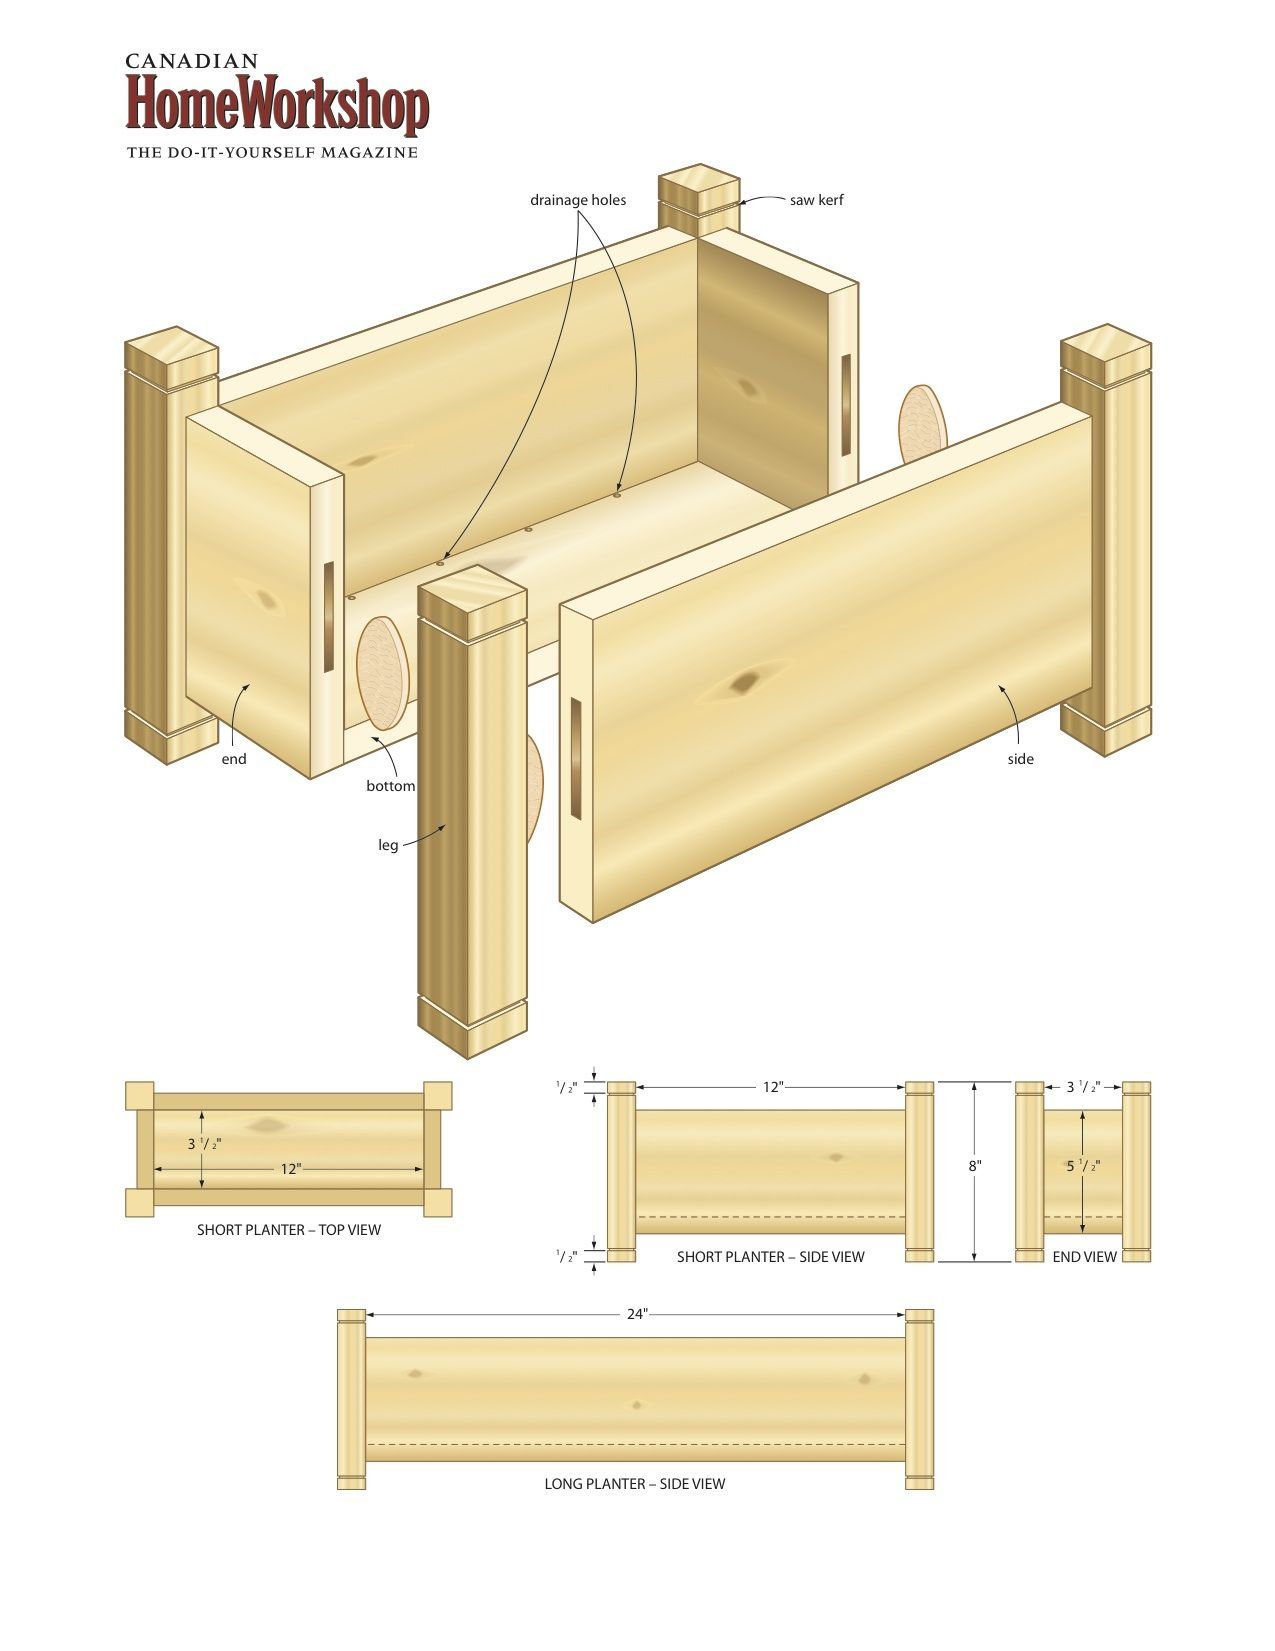 deck planter box part 2 canada homeworkshop i think it would need more support than just biscuting  [ 1275 x 1651 Pixel ]